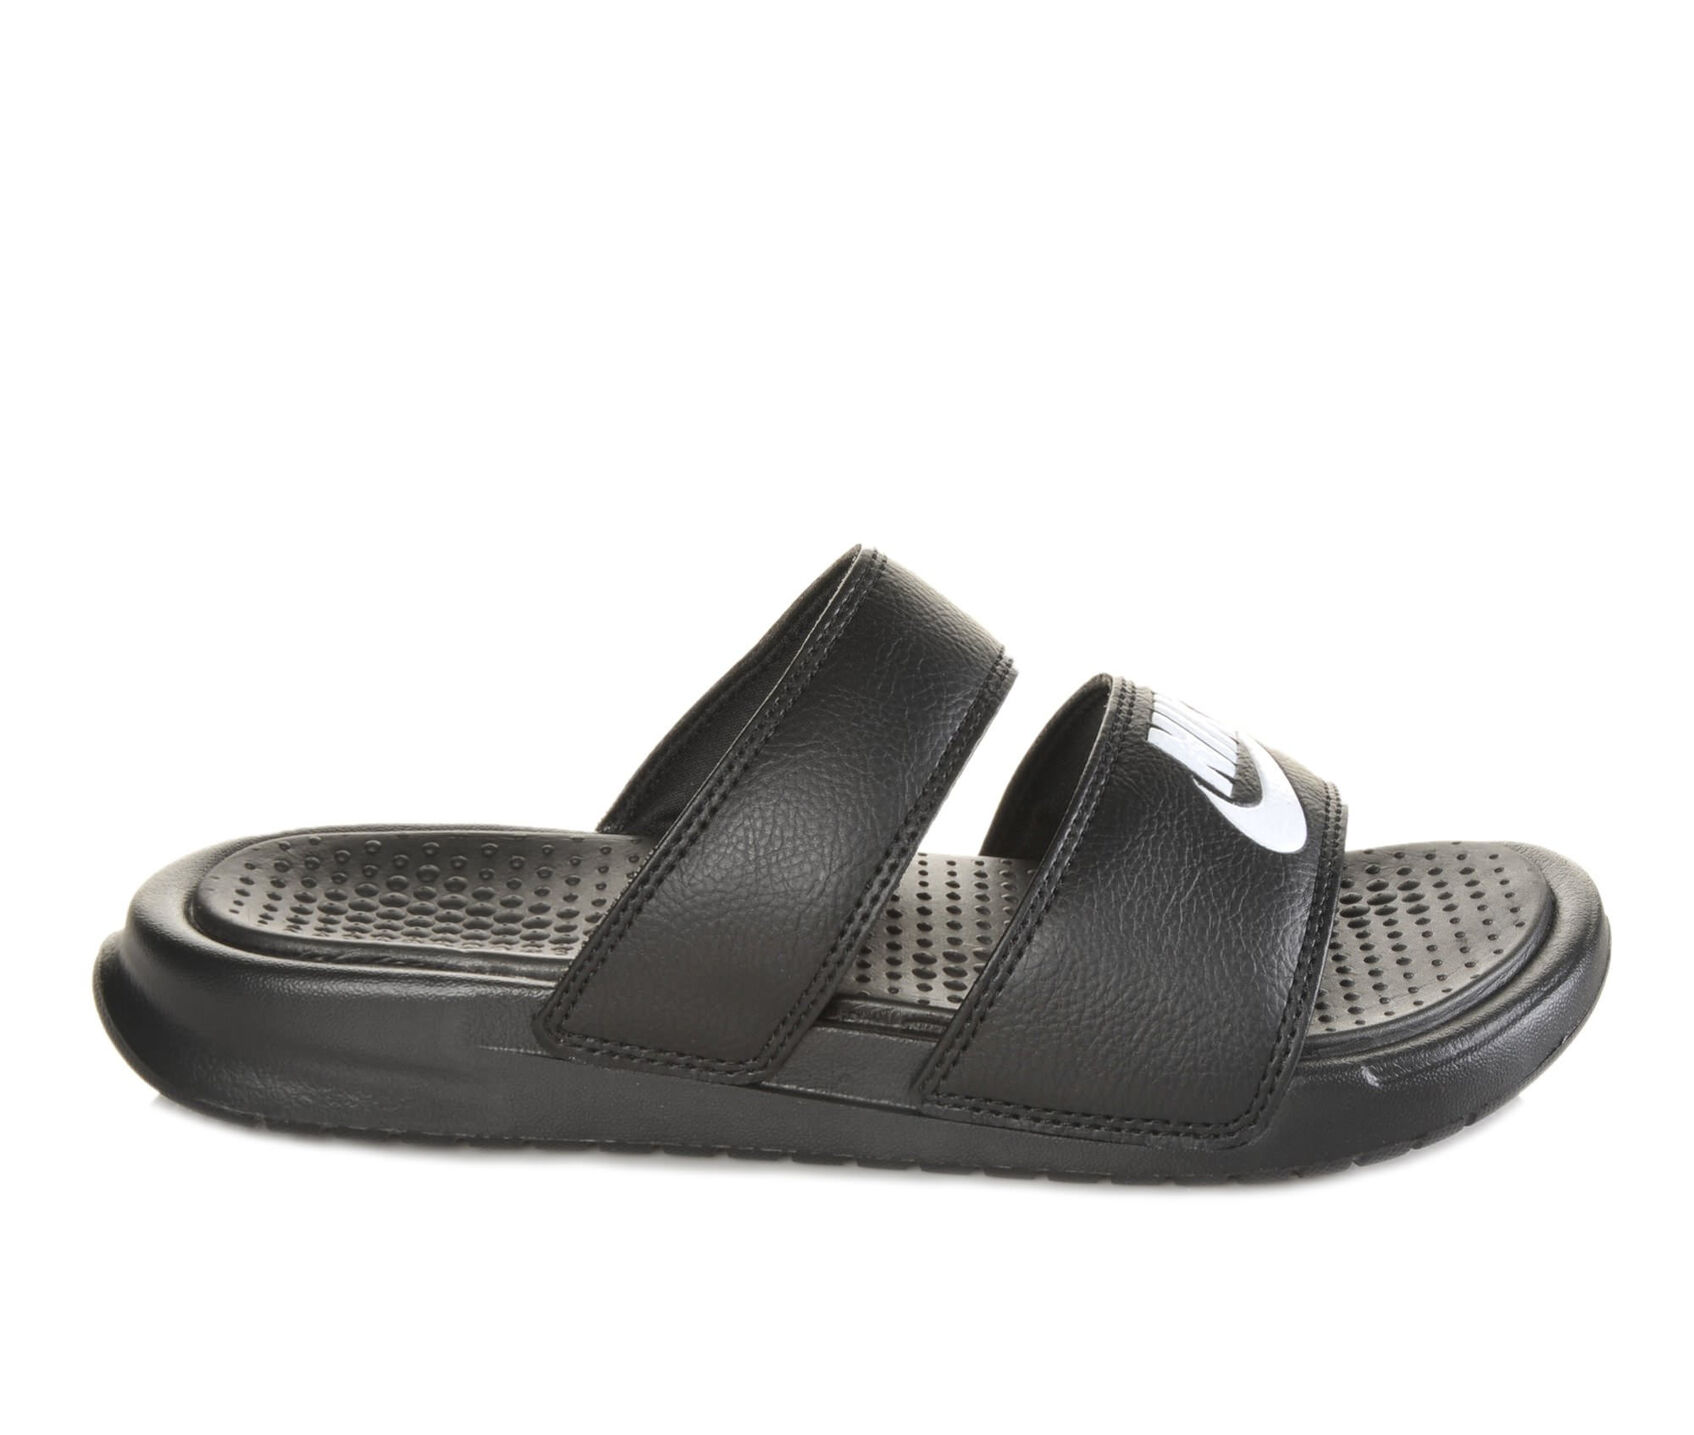 new product a87ae 0dc33 Women's Nike Benassi Duo Slide Sandals